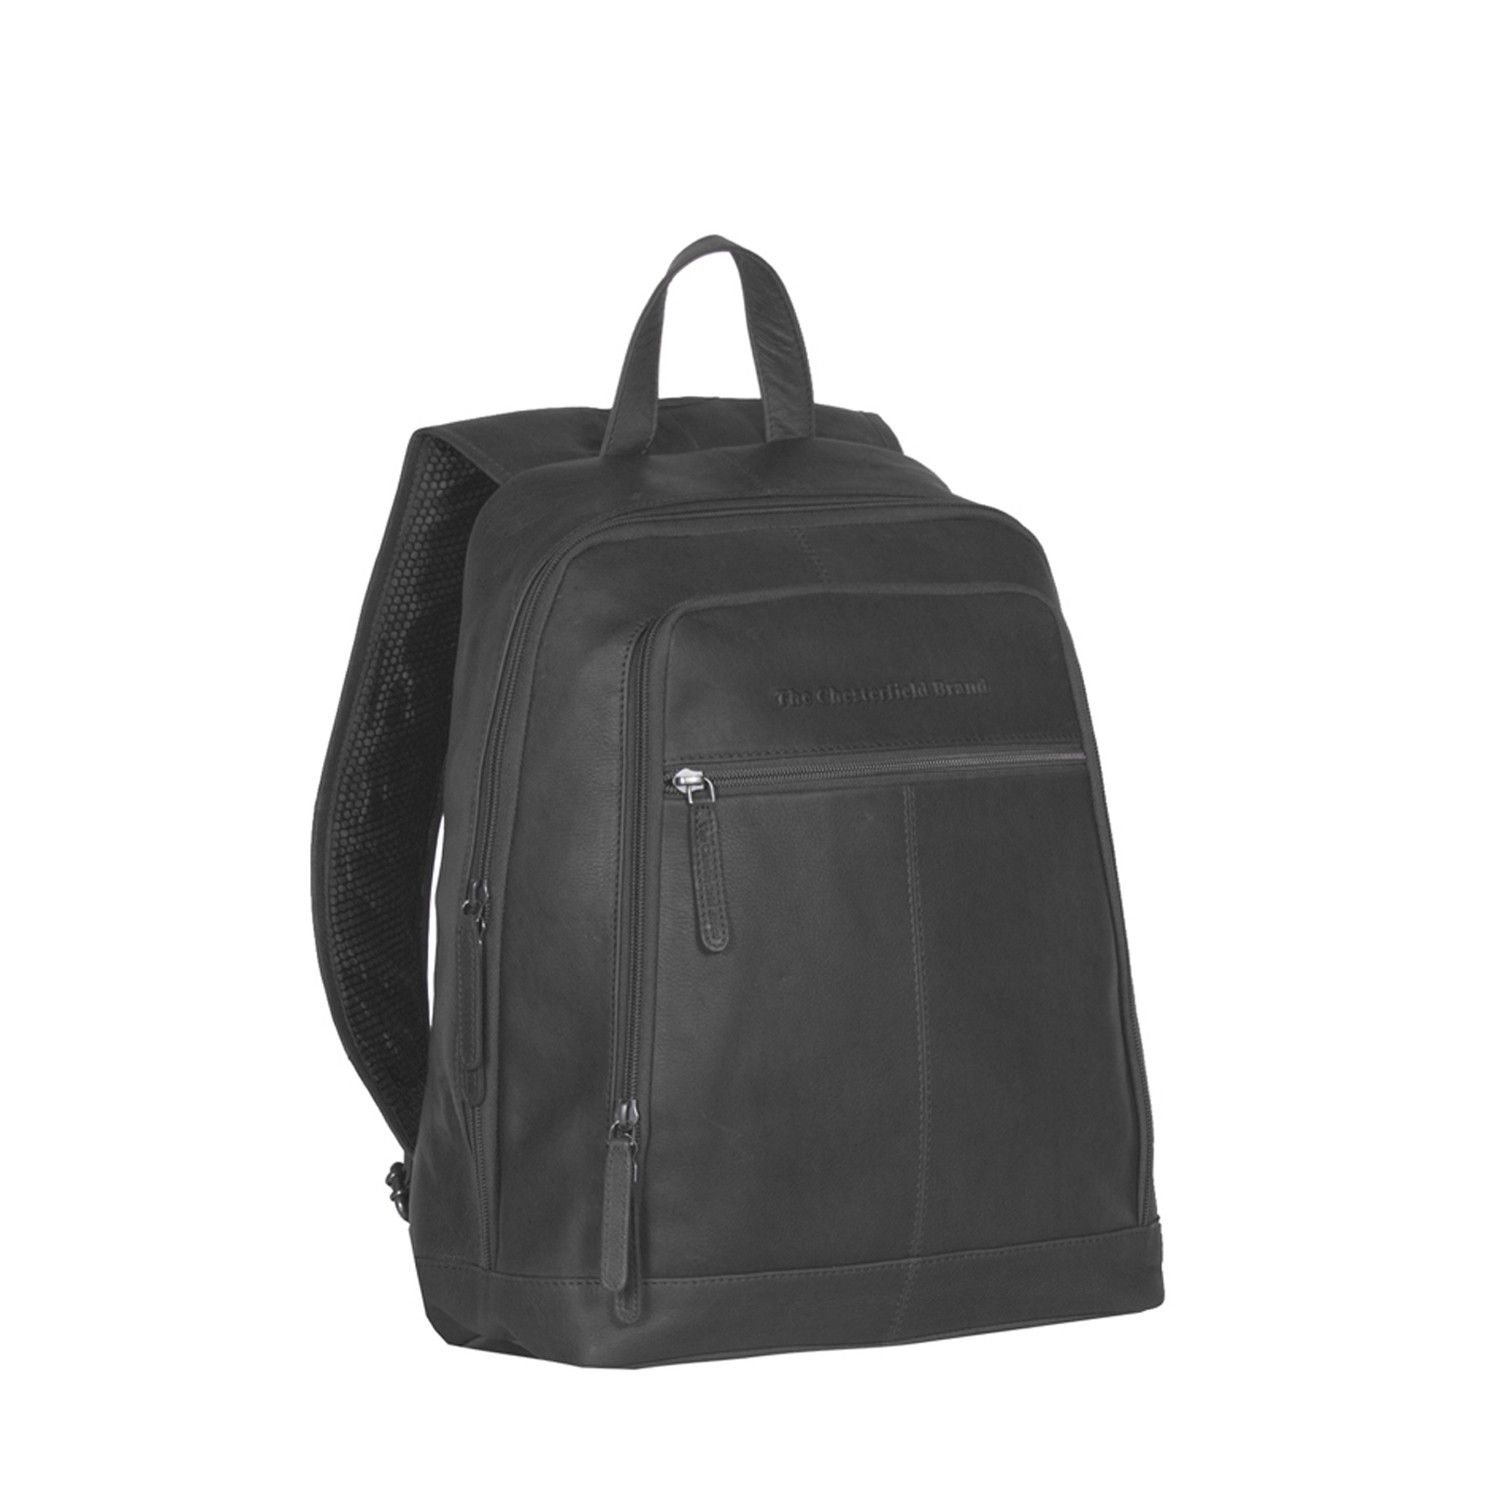 Image de Chesterfield Leather Backpack Black James